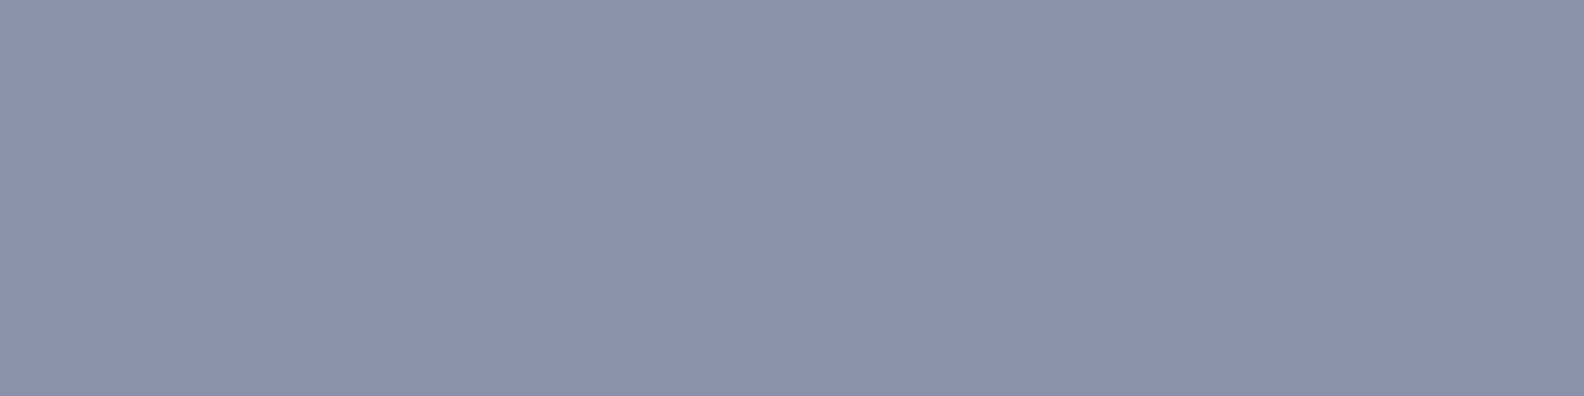 1584x396 Cool Grey Solid Color Background